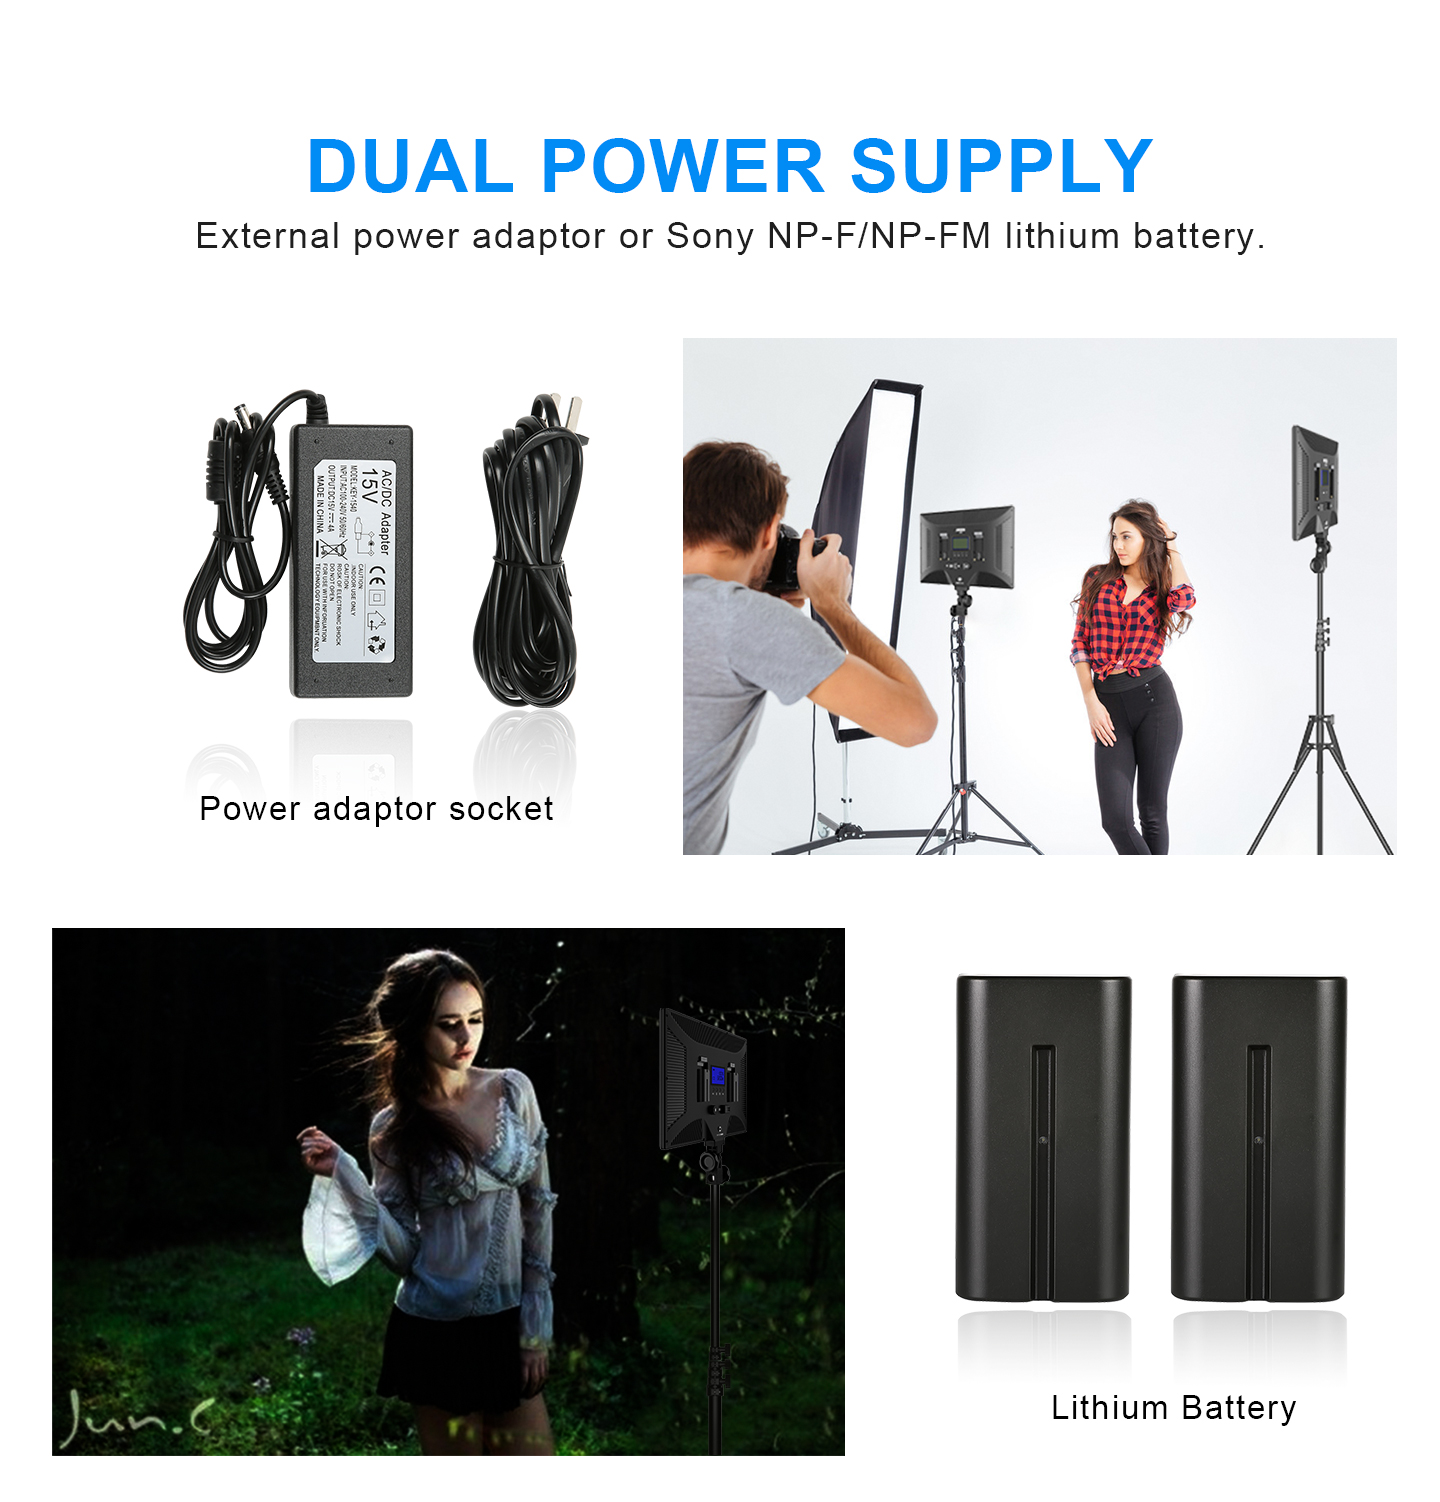 DUAL POWER SUPPLY